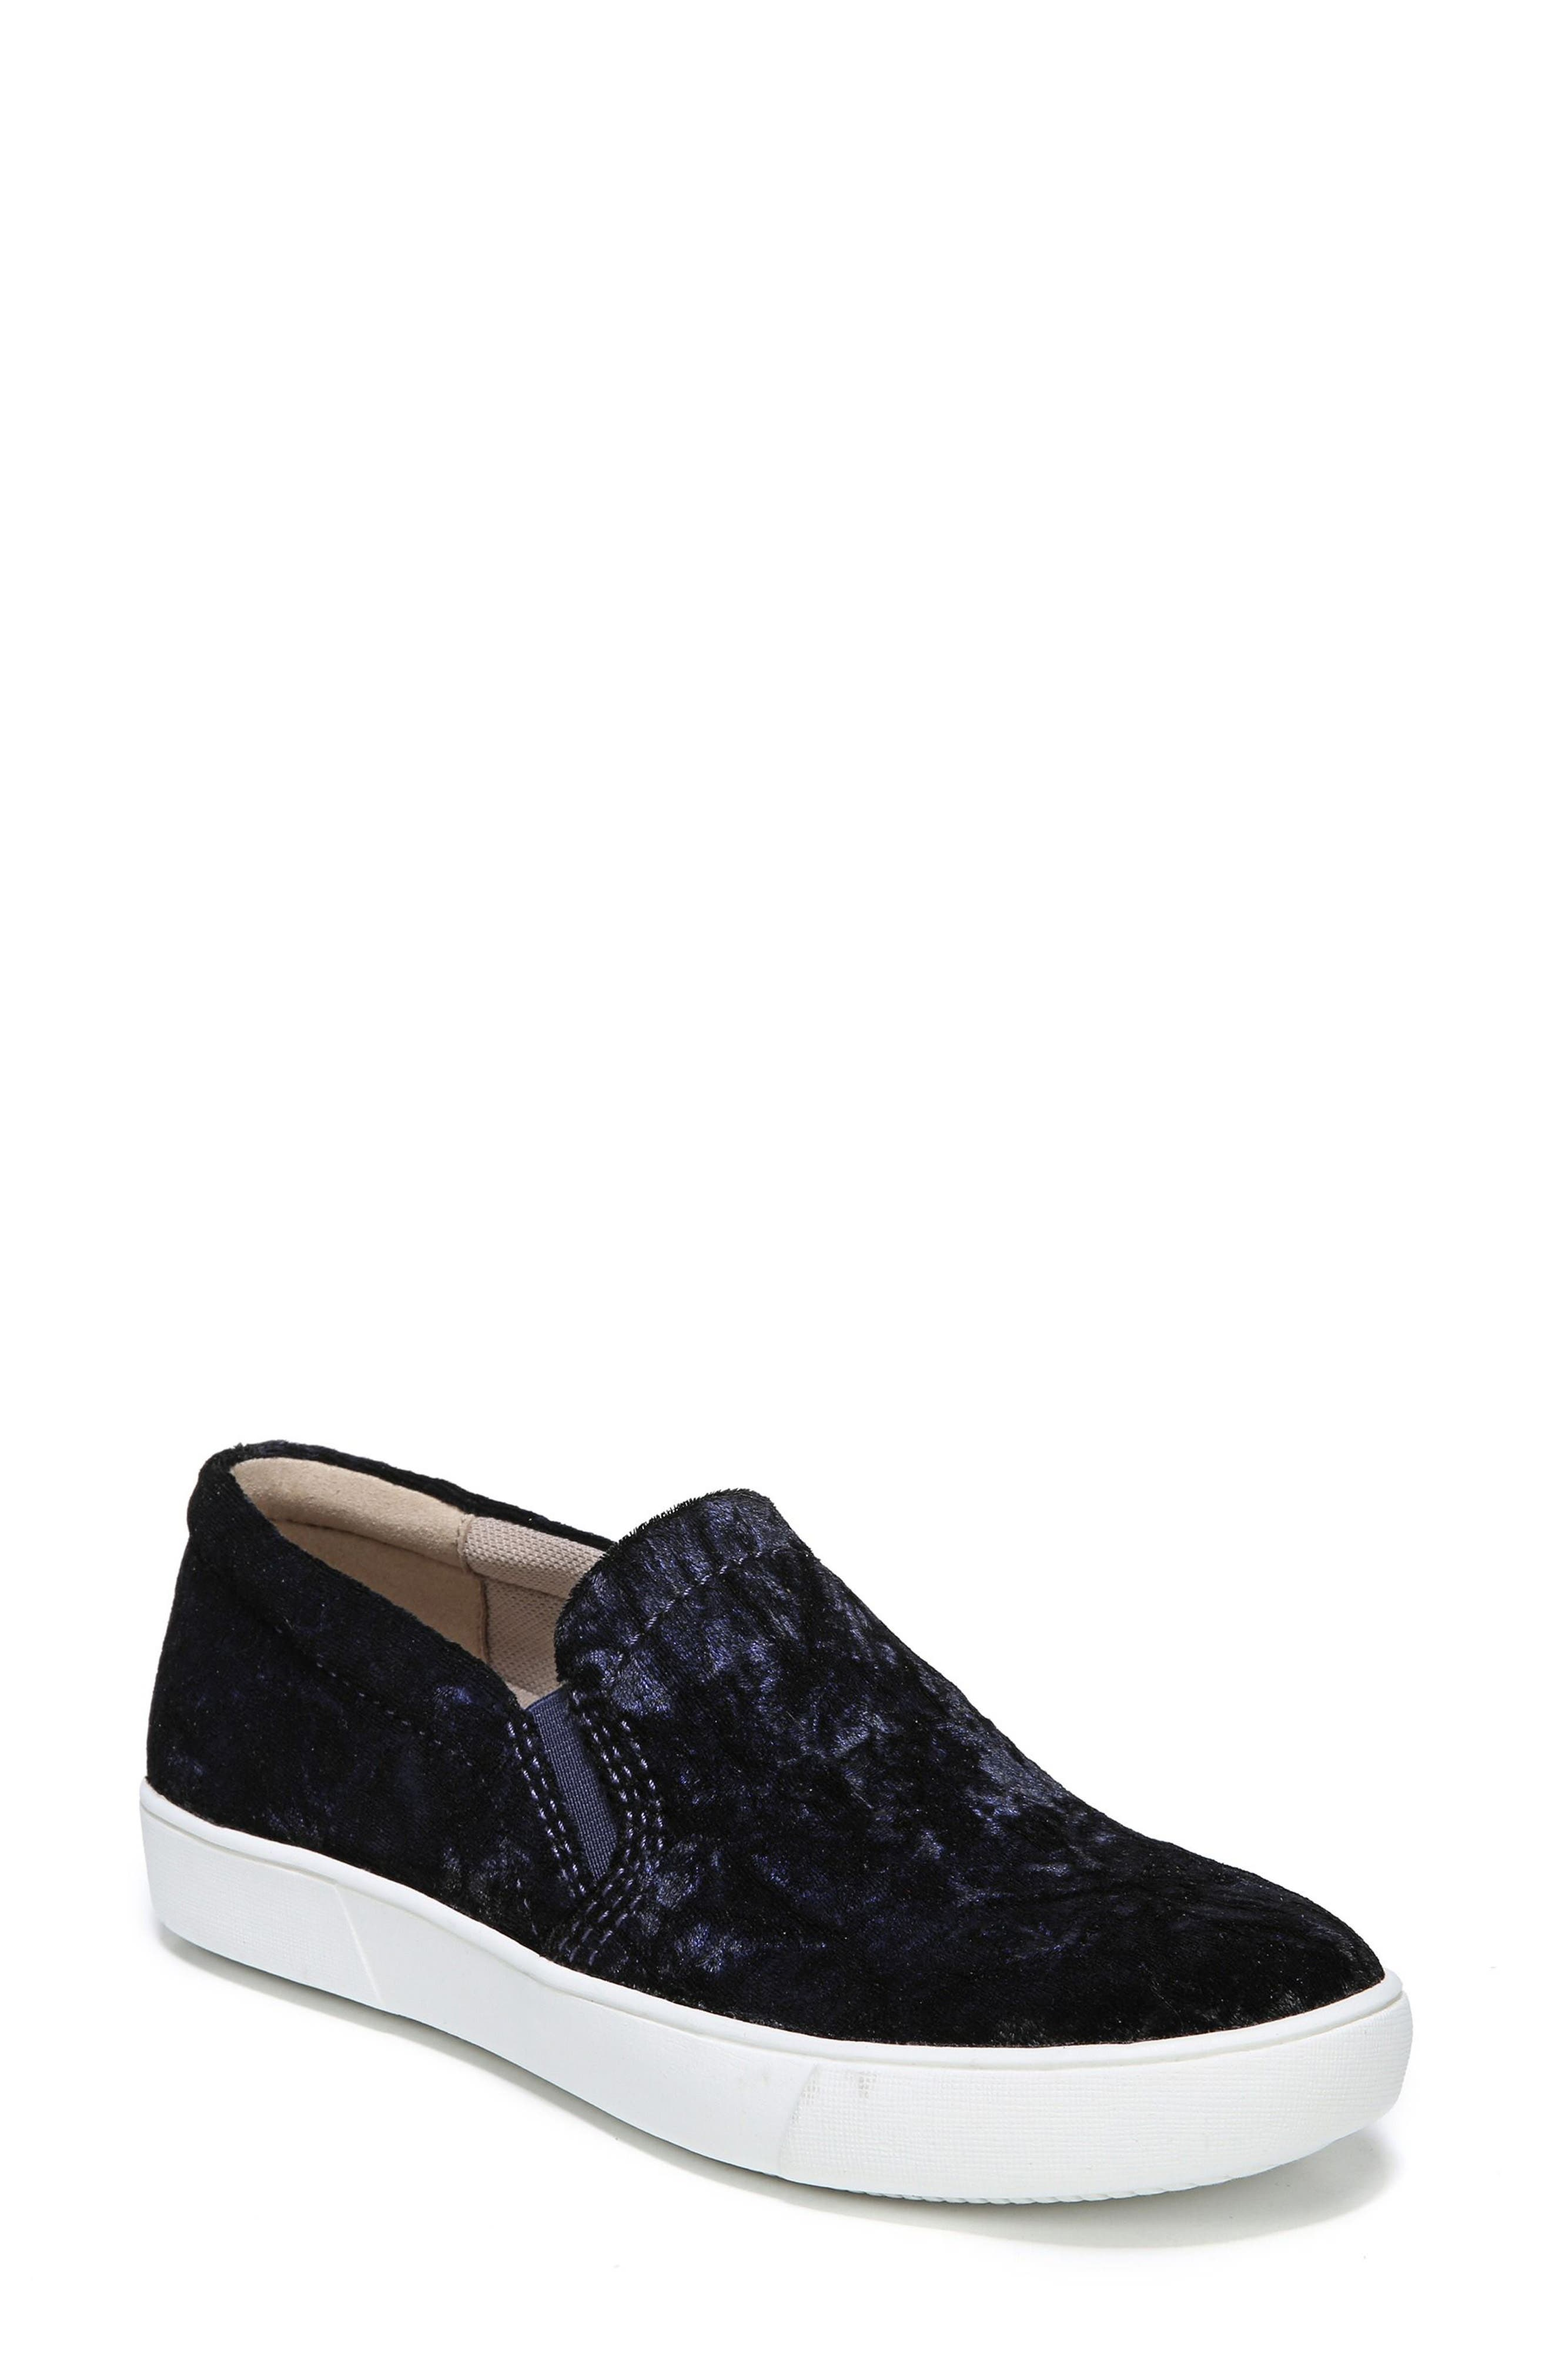 NATURALIZER Marianne Slip-On Sneaker, Main, color, NAVY VELVET